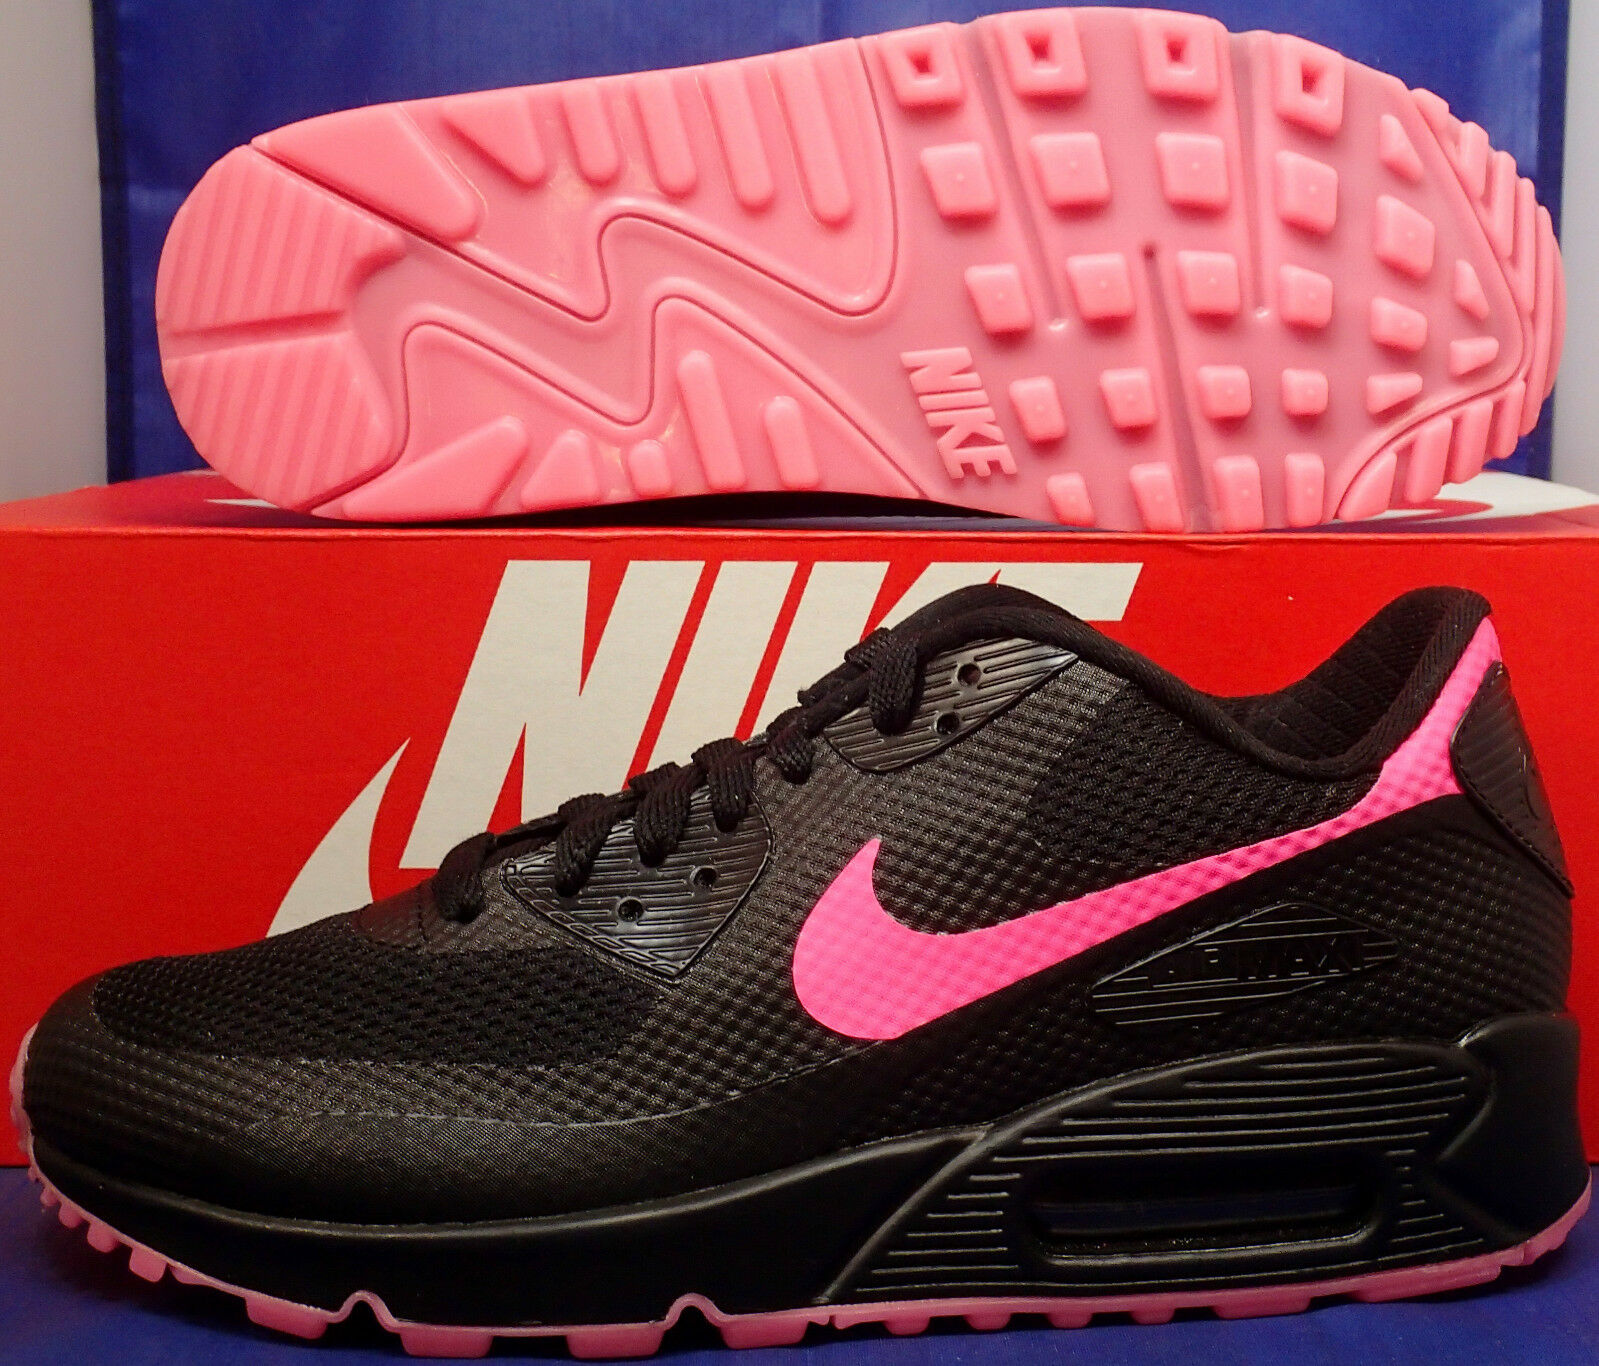 Womens Nike Air Max 90 Hyperfuse Premium iD Black Pink Price reduction